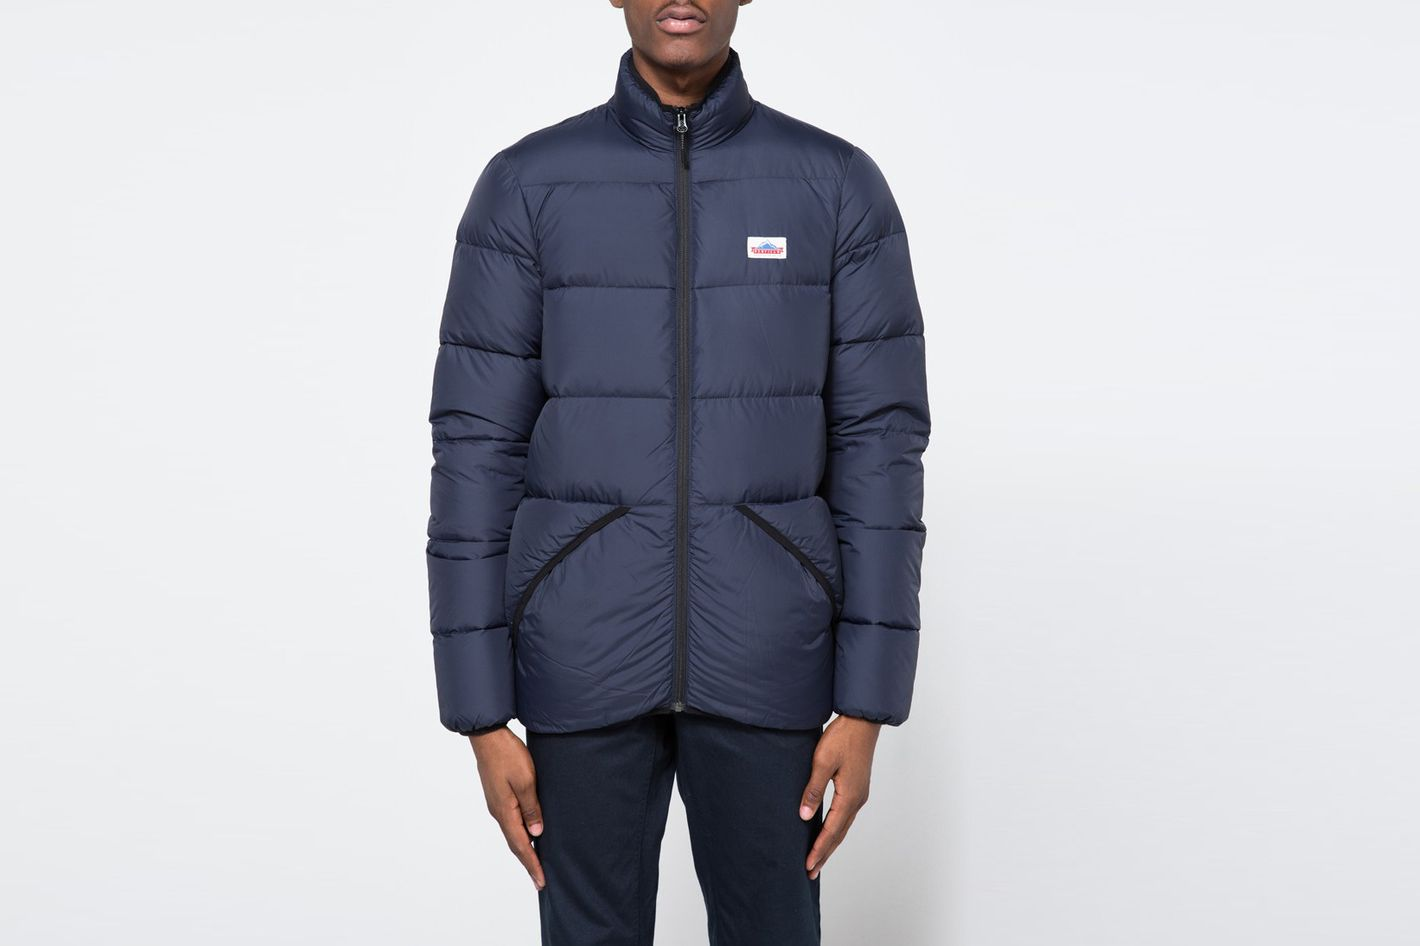 Penfield Walkabout Puffer Jacket